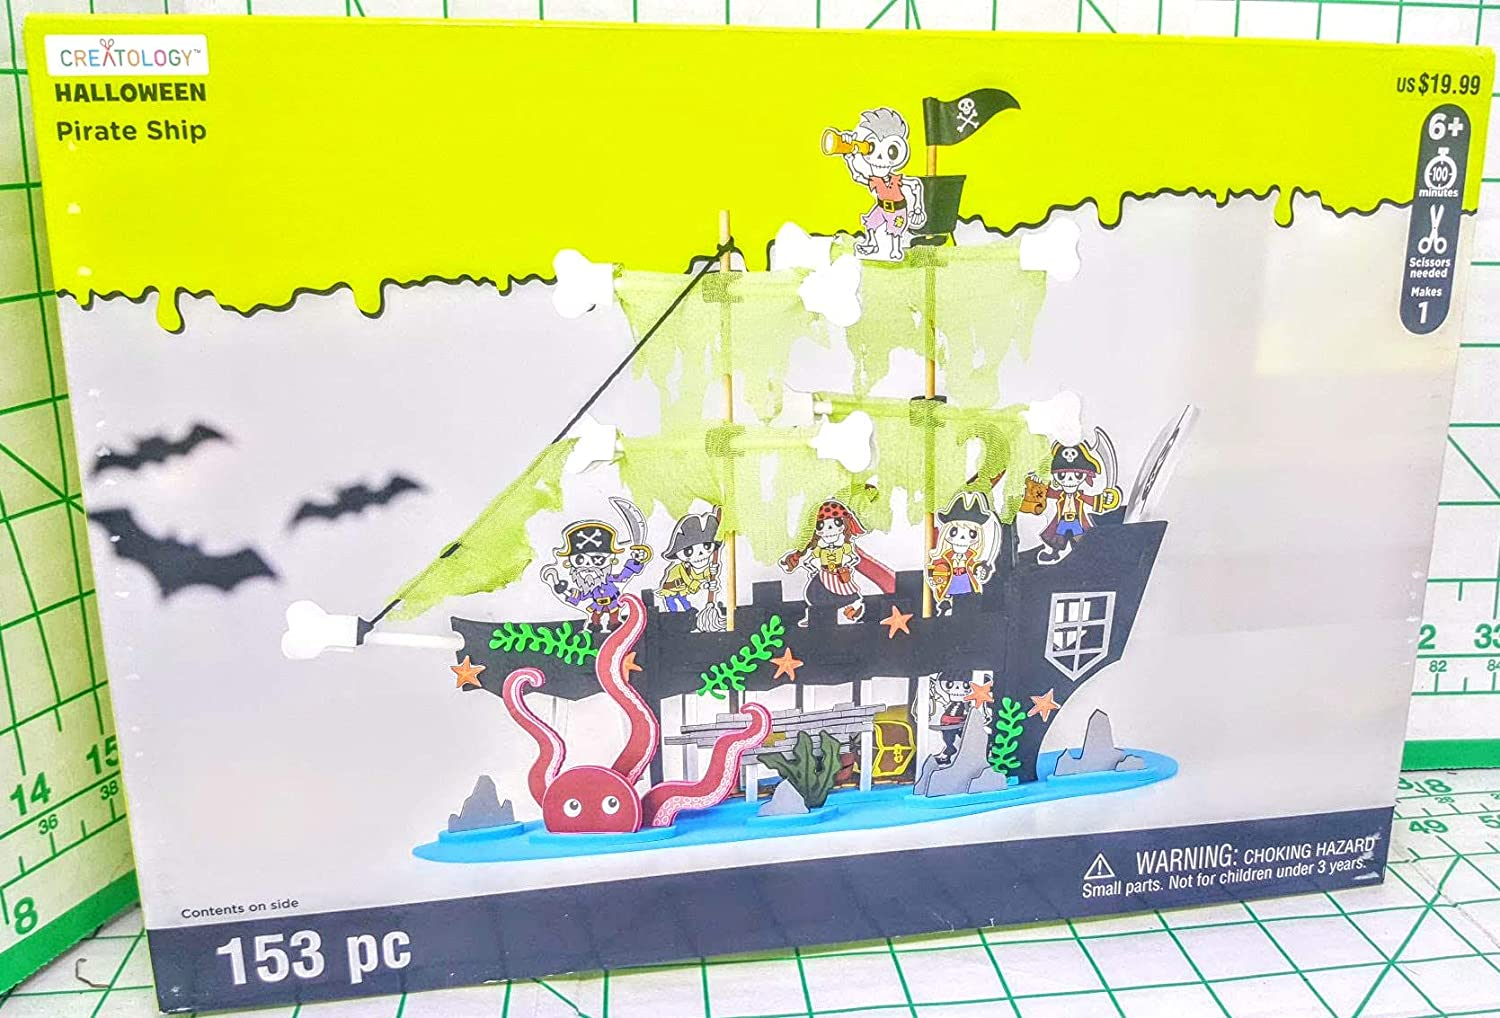 Creatology Halloween Pirate Ship with 7 Skeleton Pirates 153 Piece kit scissers Needed MSRP $29.99 MSPCI